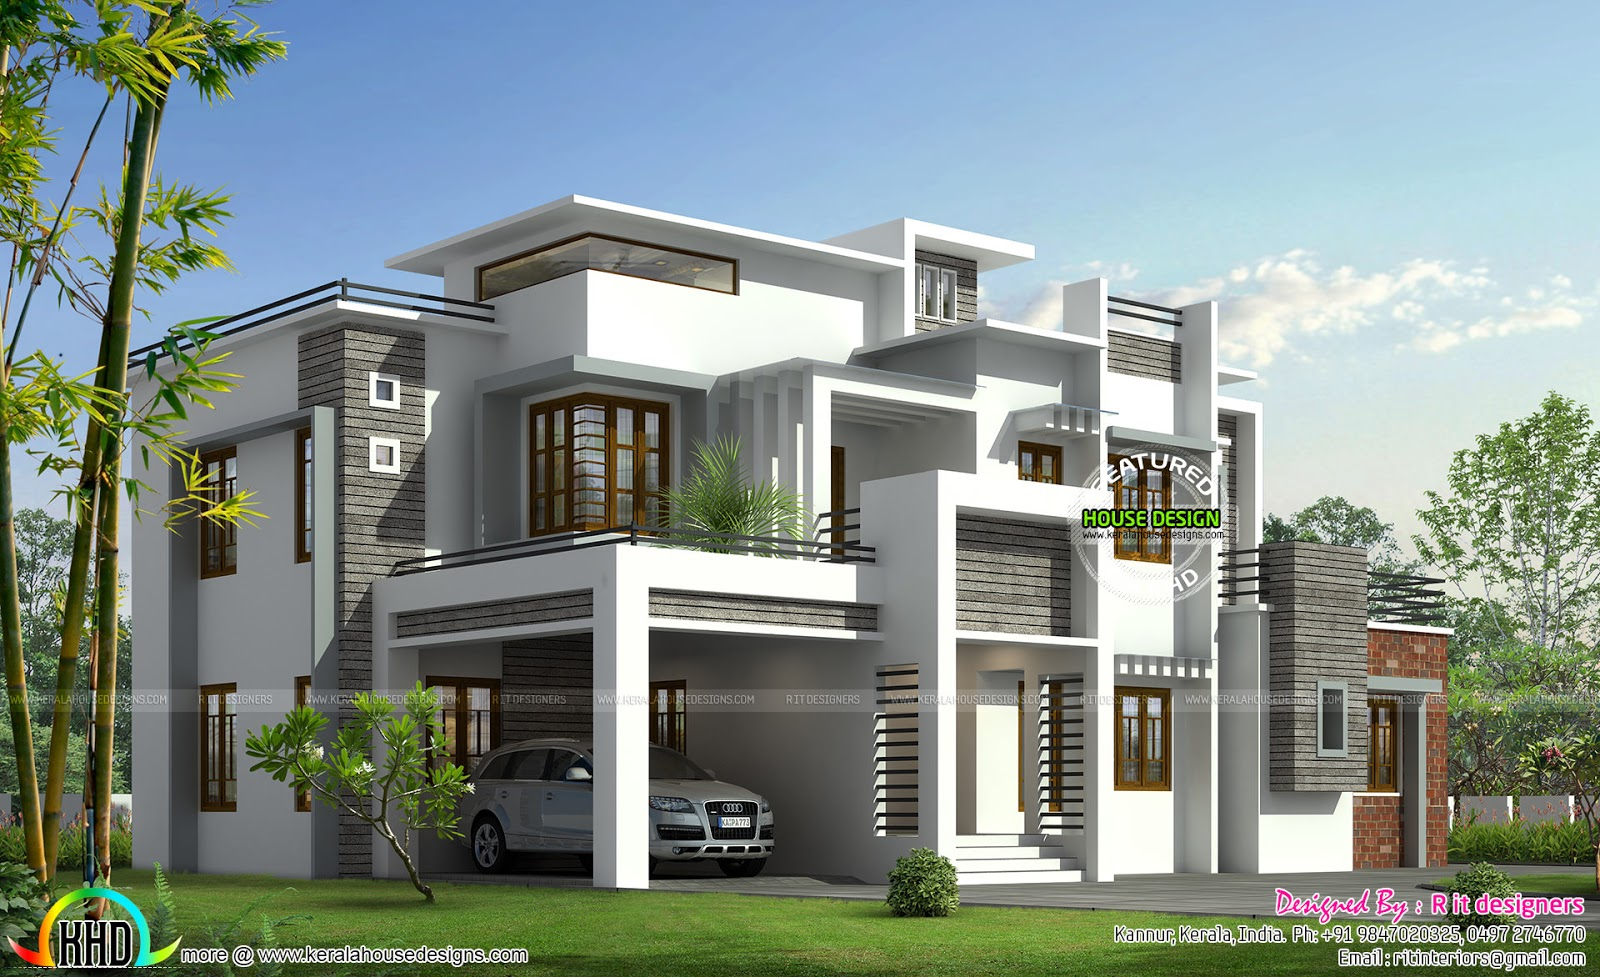 Box model contemporary house kerala home design and for Model home plans